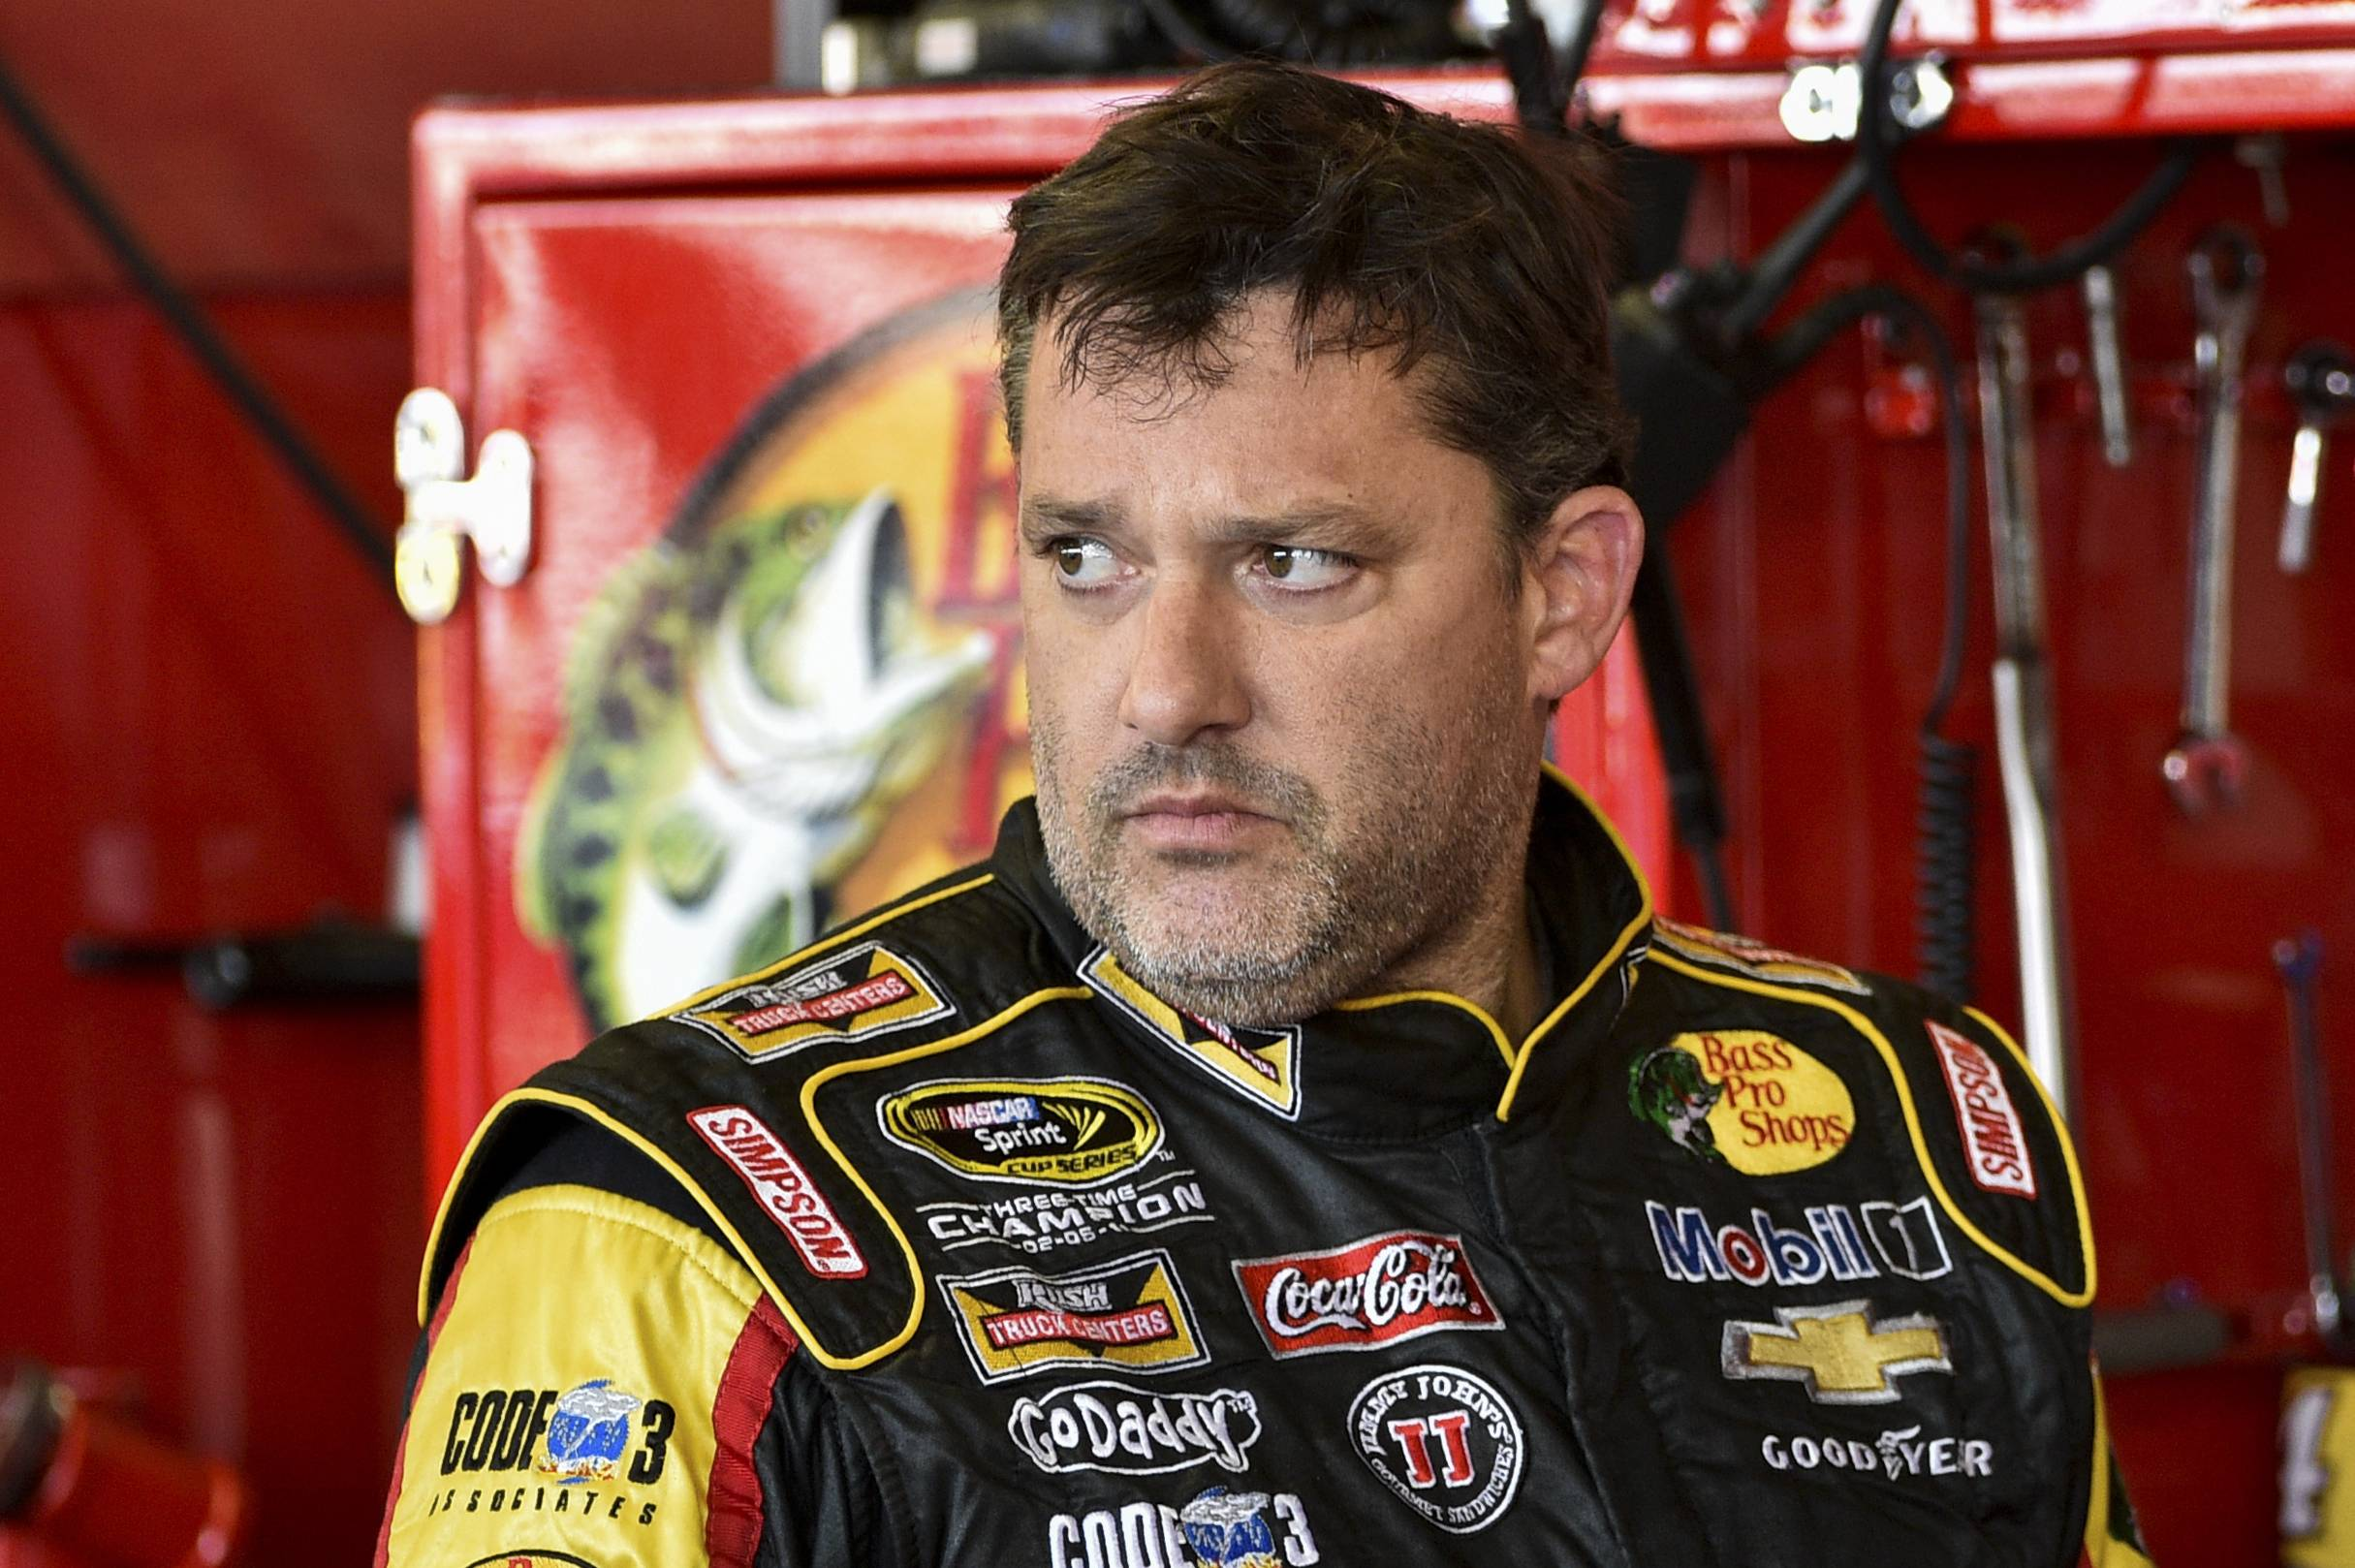 NASCAR driver Tony Stewart struck and killed 20-year-old Kevin Ward Jr., who had climbed from his car and was on the track trying to confront Stewart during a race at Canandaigua Motorsports Park in upstate New York on Saturday night.